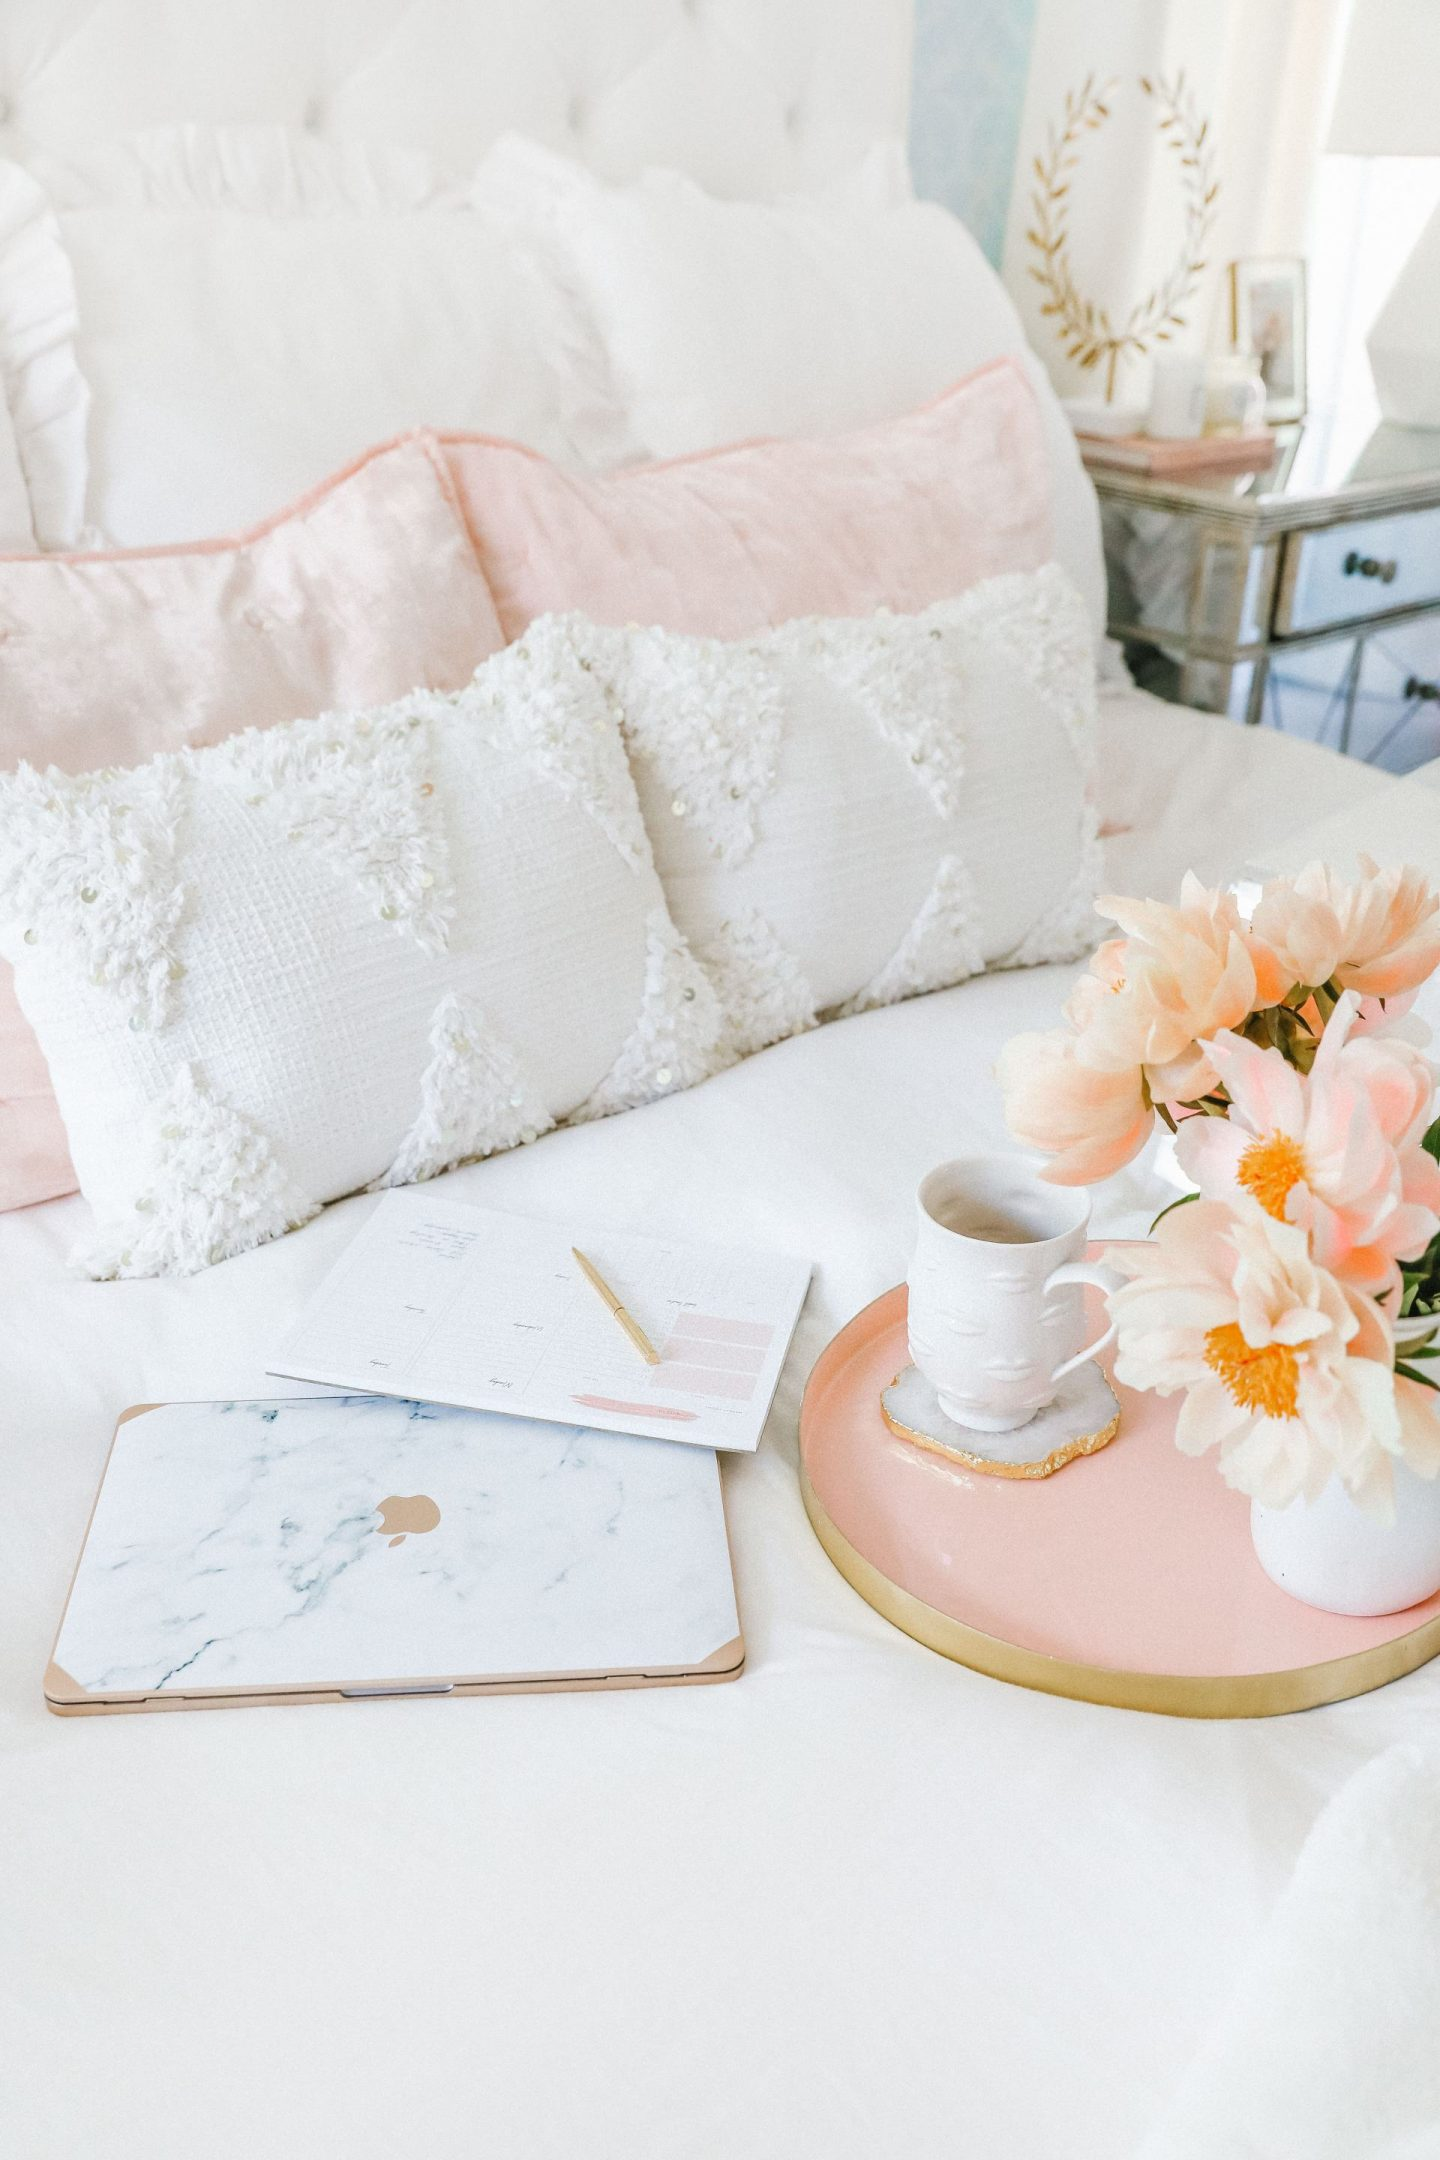 Work from home office item favorites, featured by San Francisco style blogger Lombard and Fifth.